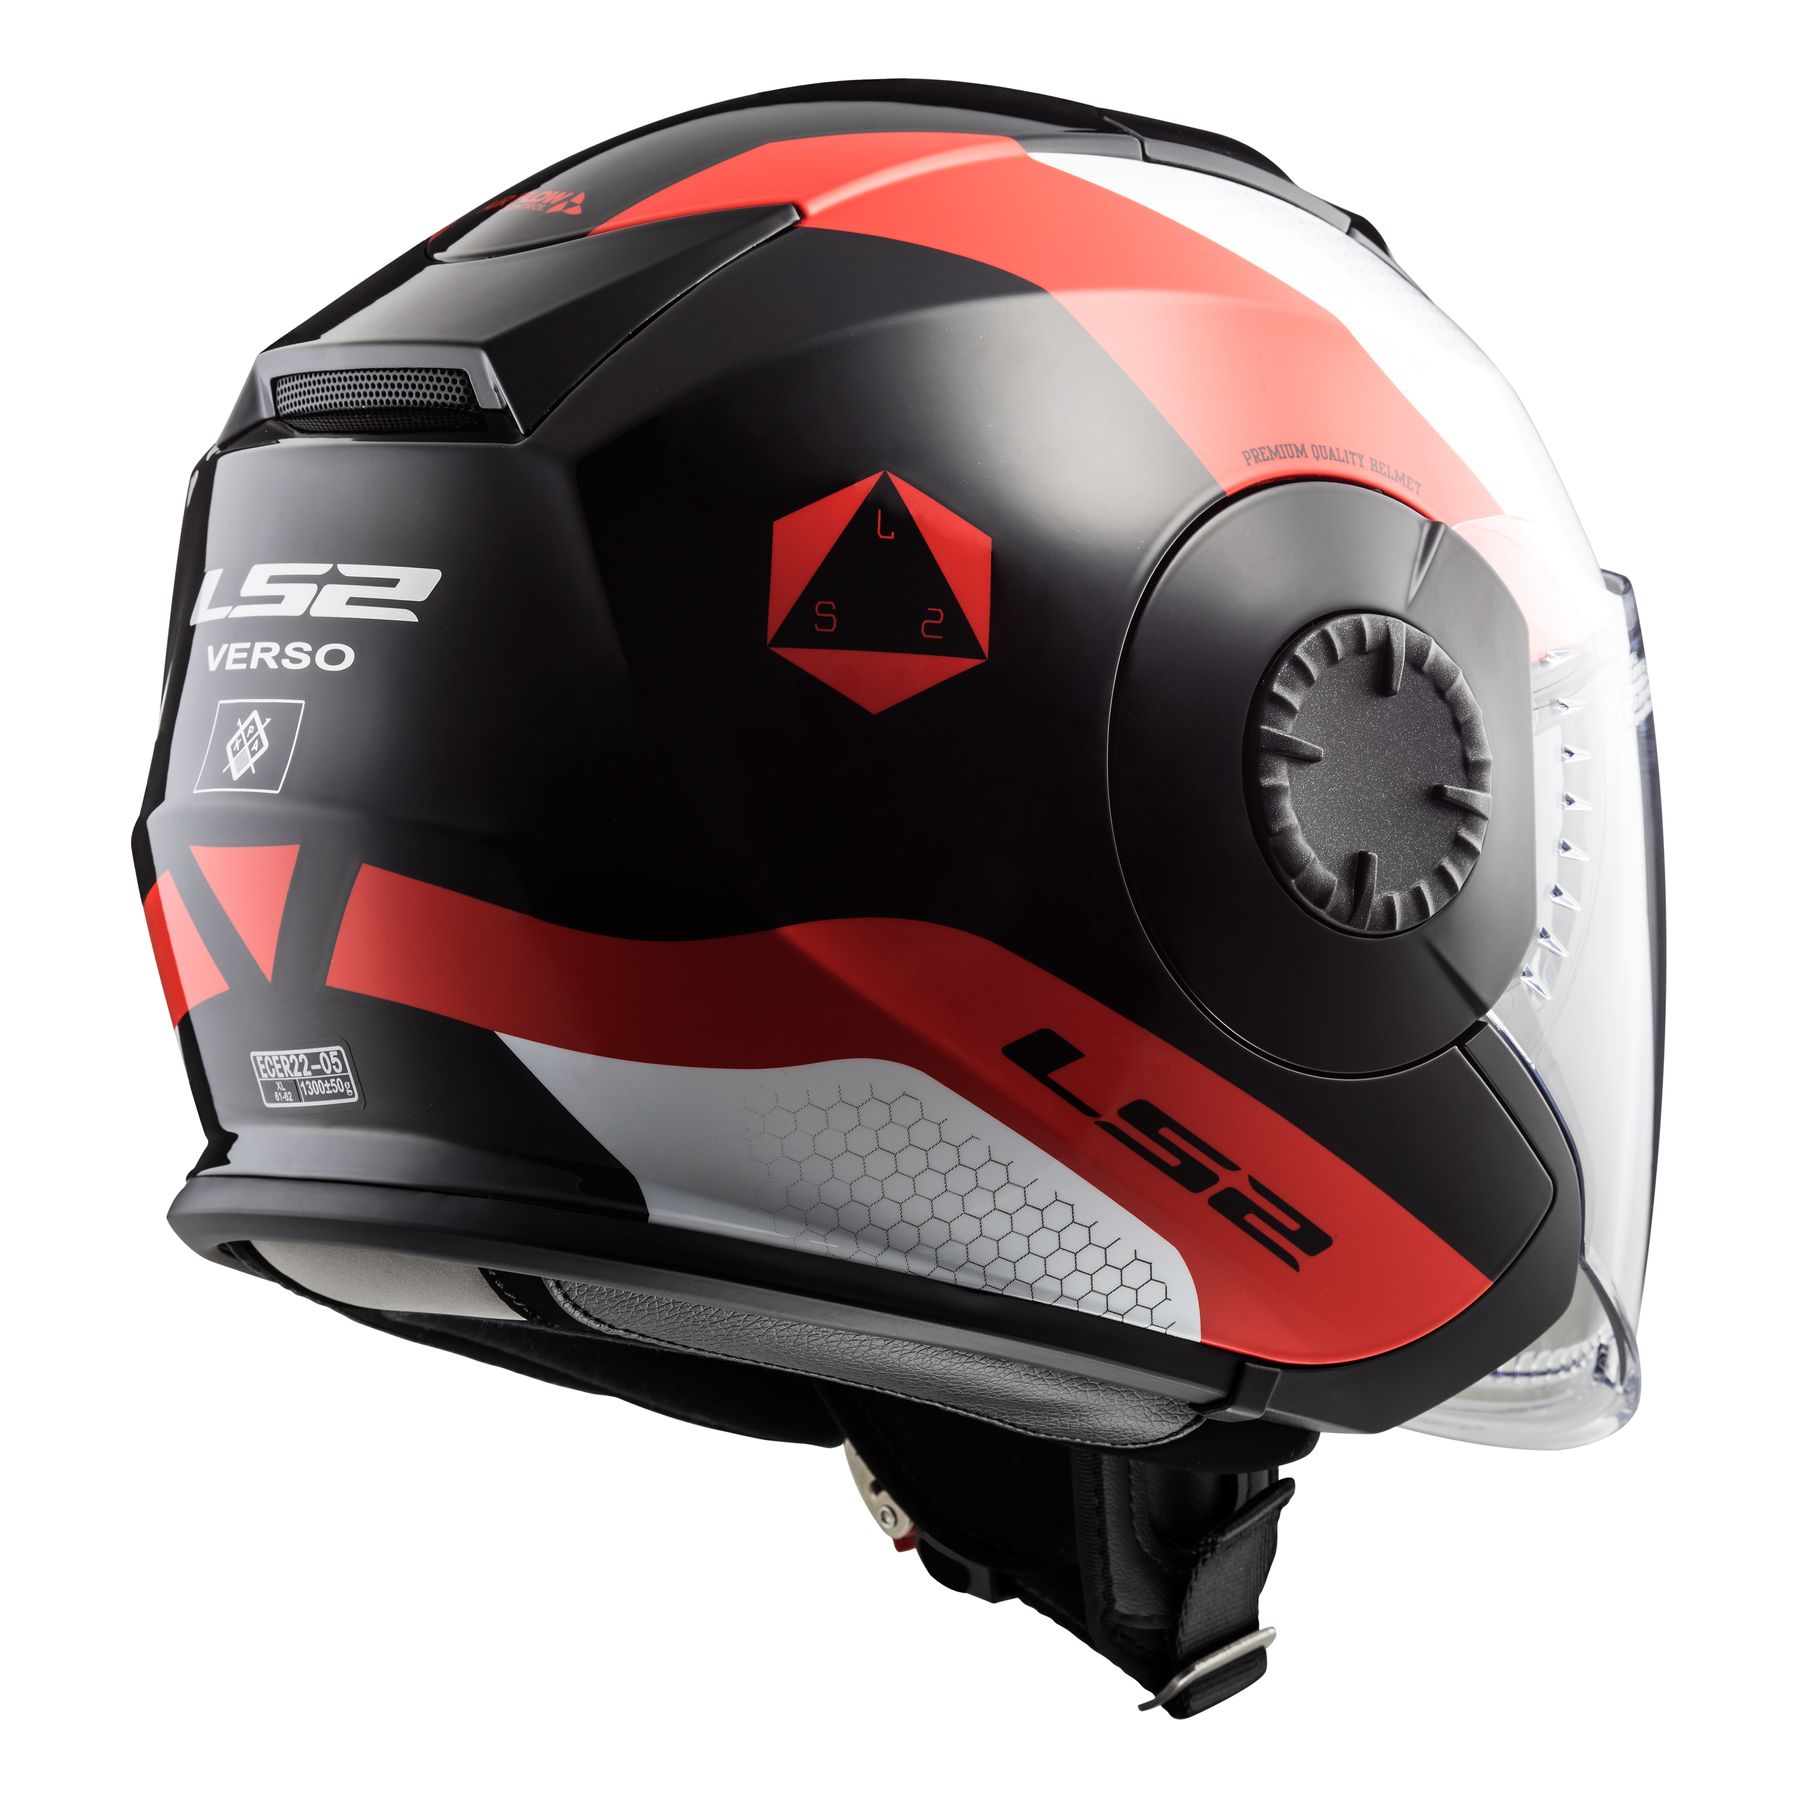 Casque ls2 destockage of570 verso technik